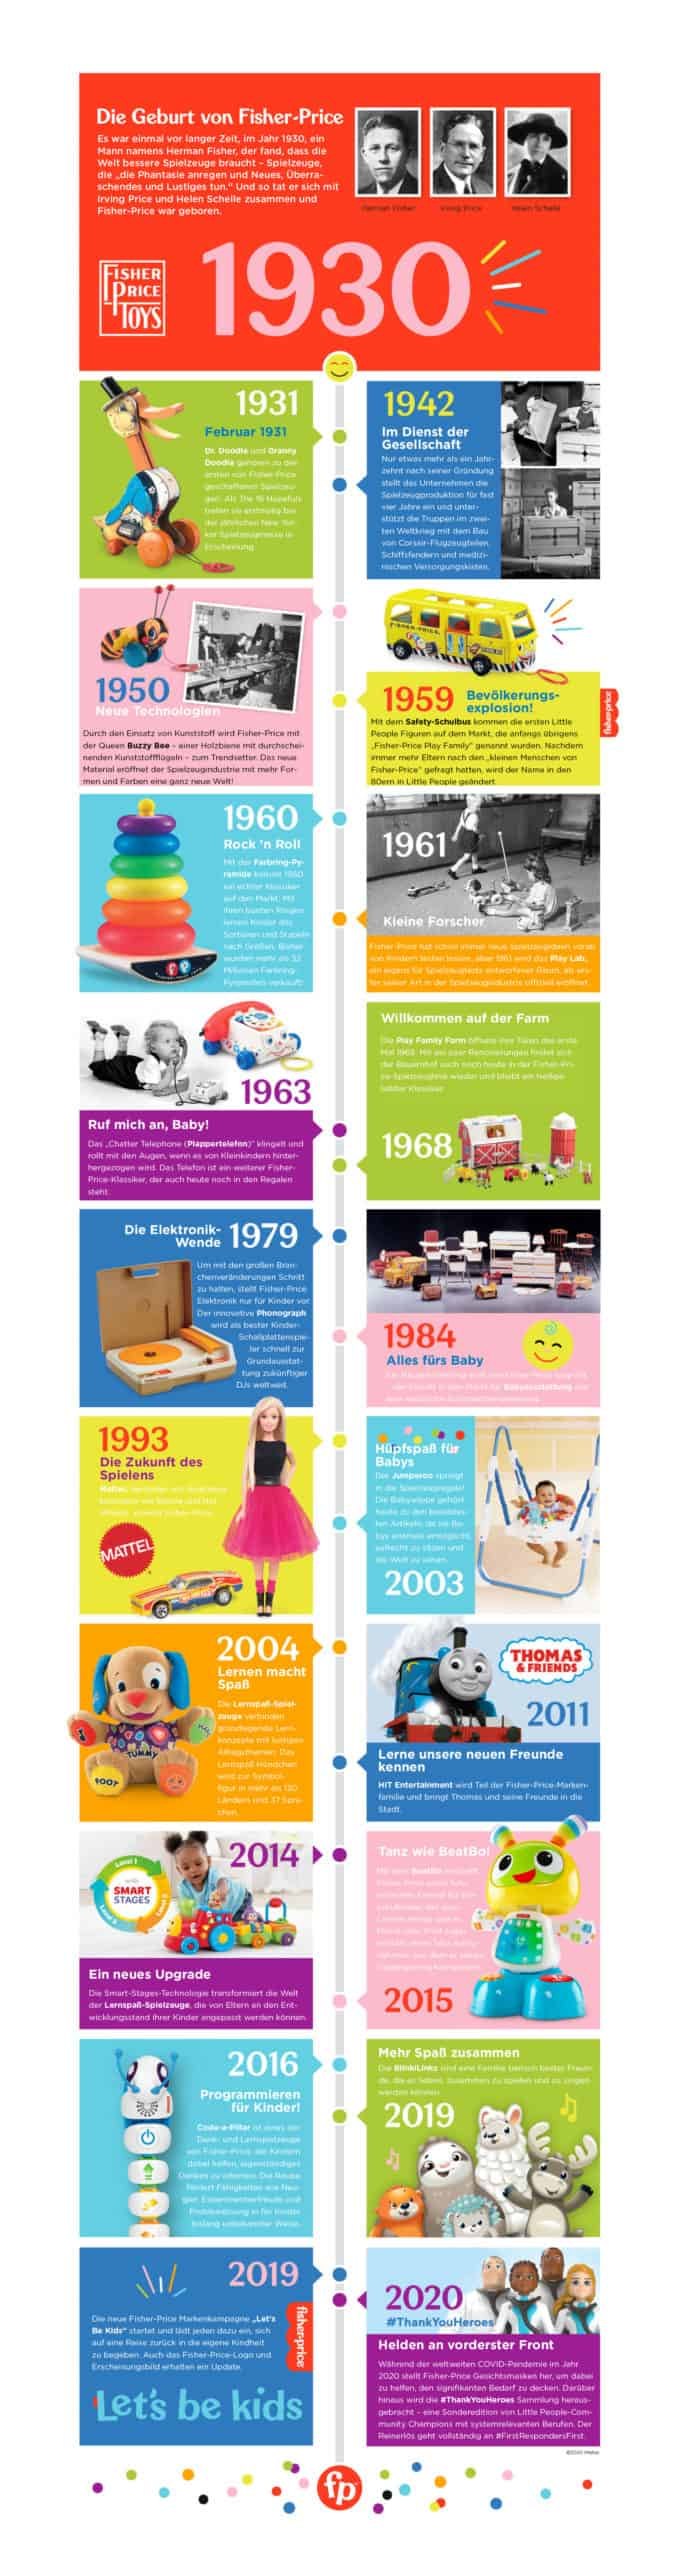 Fisher-Price Timeline